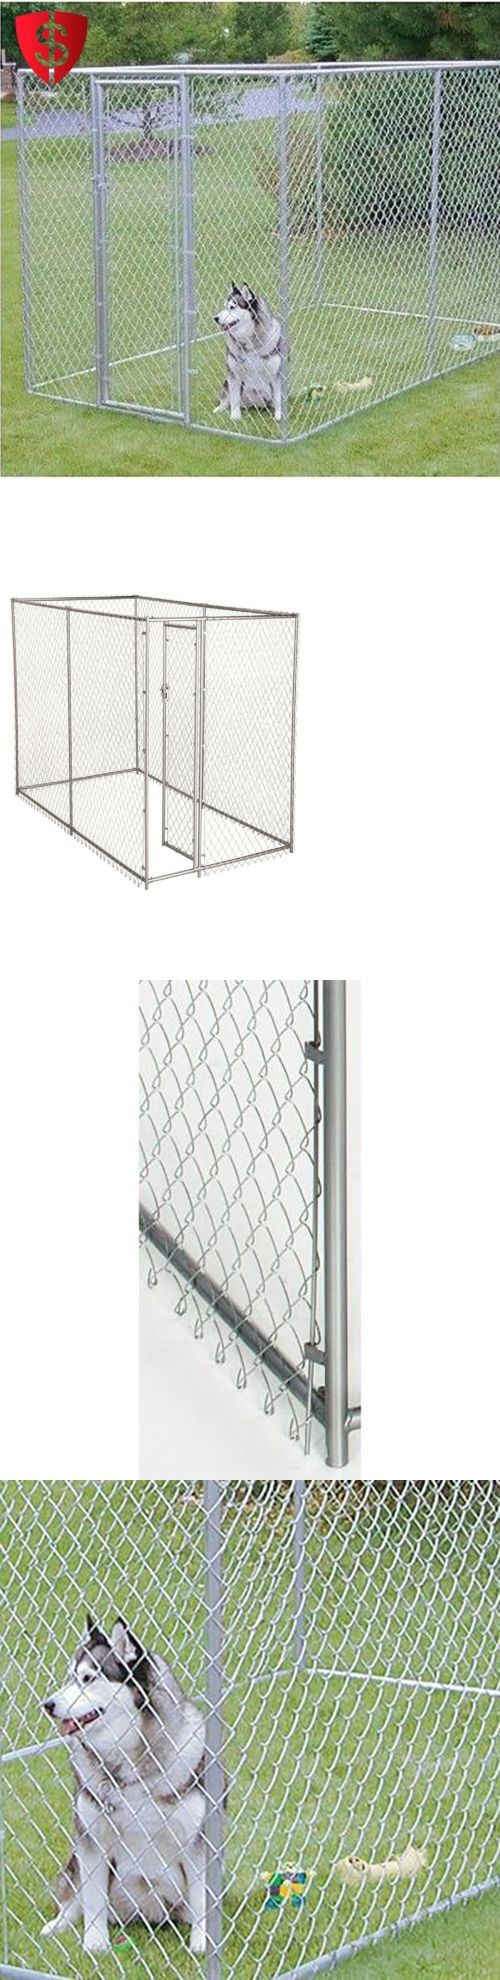 1000 ideas about outdoor dog kennels on pinterest dog for Dog run fence home depot